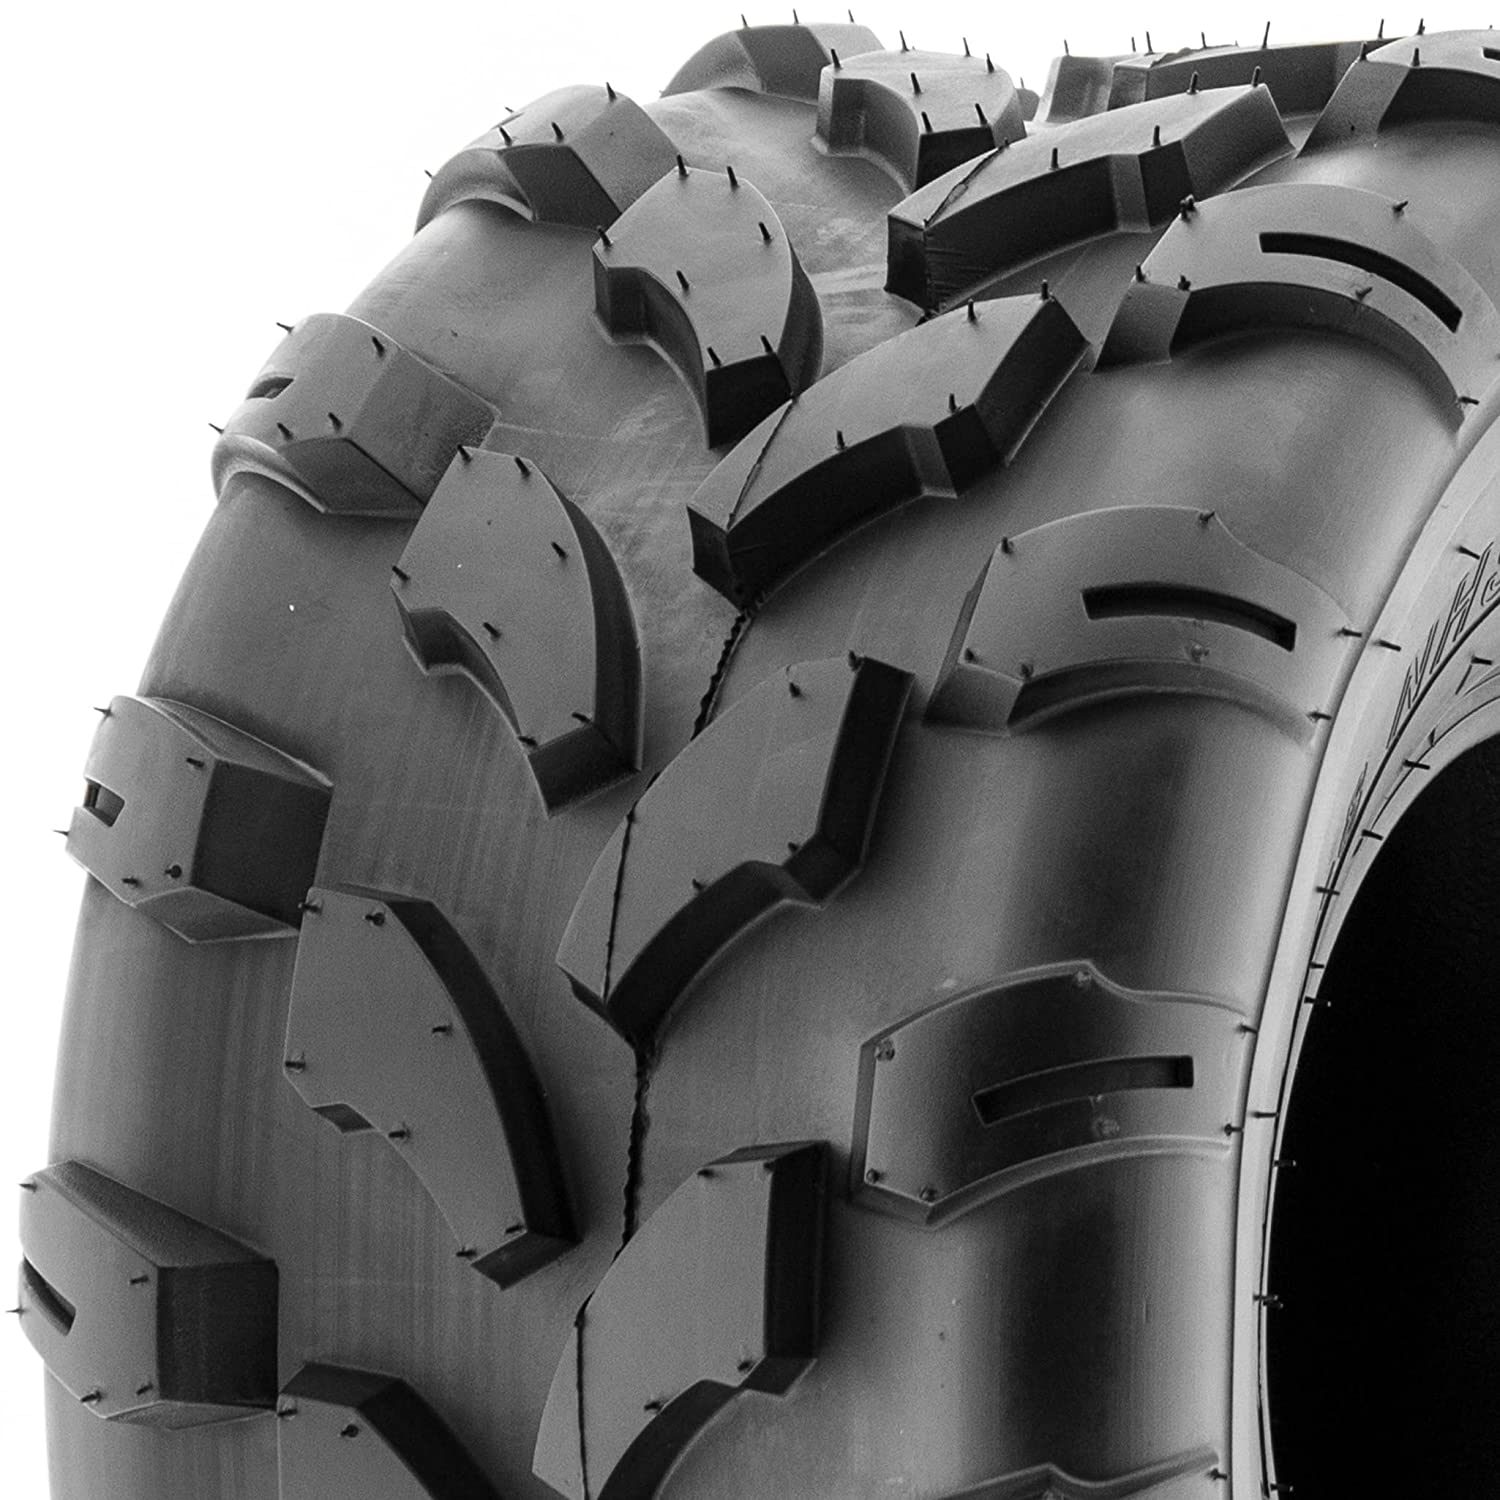 SunF ATV UTV 19x9.5-8 All Terrain 6 PR Tubeless Knobby Replacement Tire A003, [Single] LCF1|A003|199508||x1